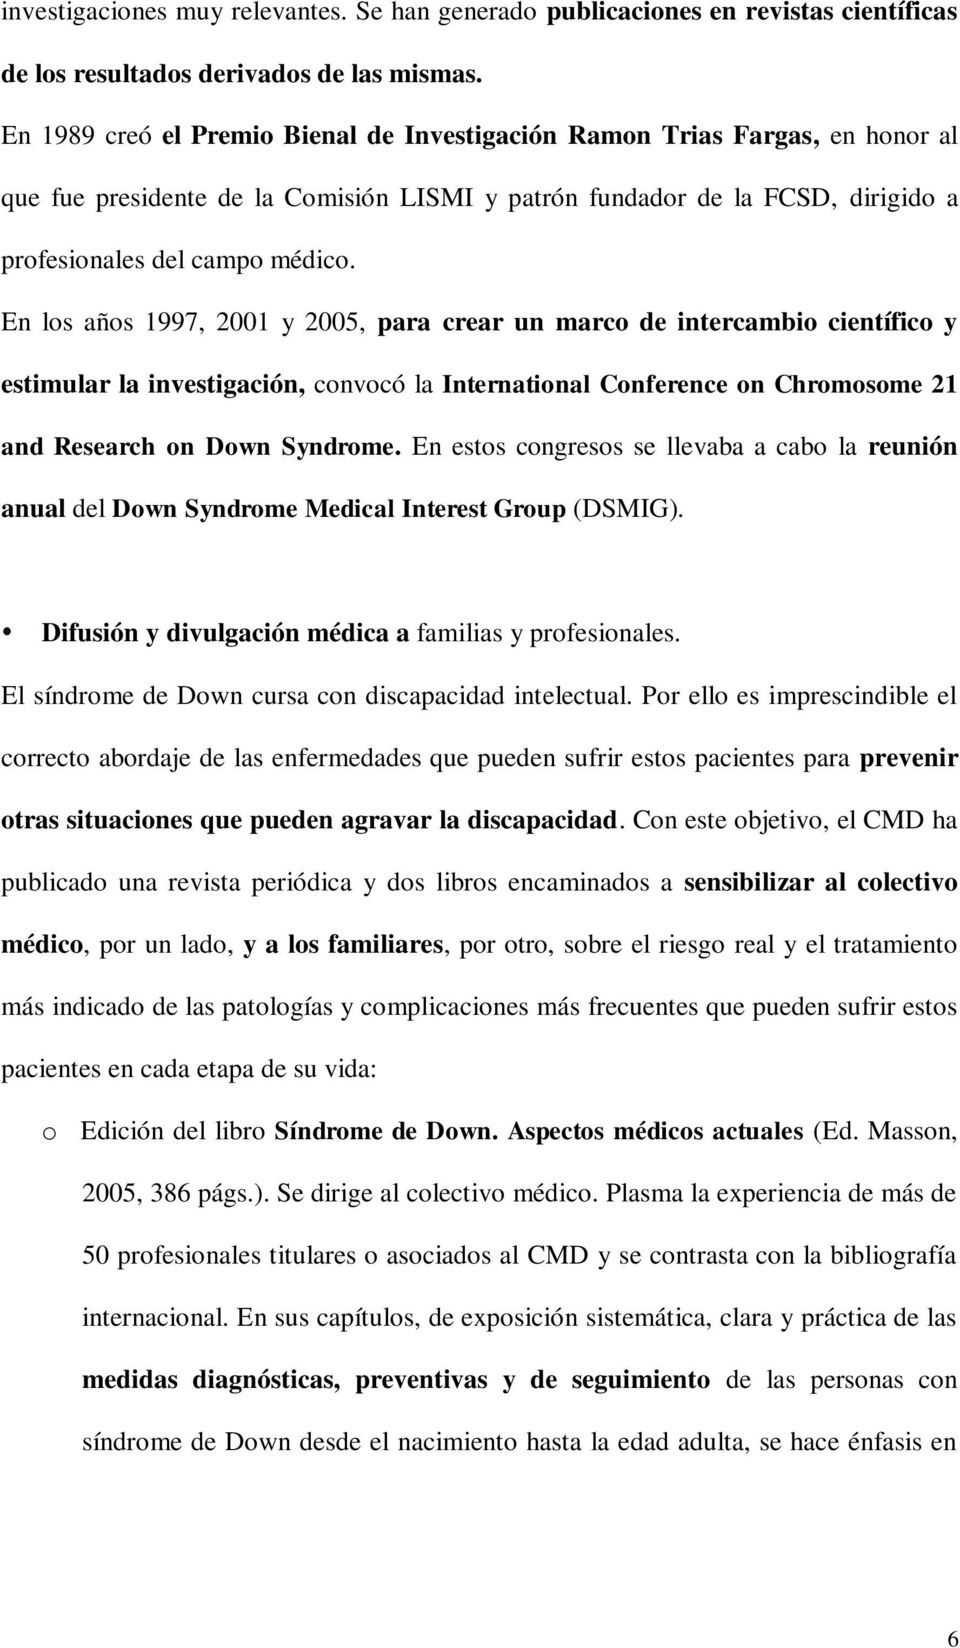 En los años 1997, 2001 y 2005, para crear un marco de intercambio científico y estimular la investigación, convocó la International Conference on Chromosome 21 and Research on Down Syndrome.